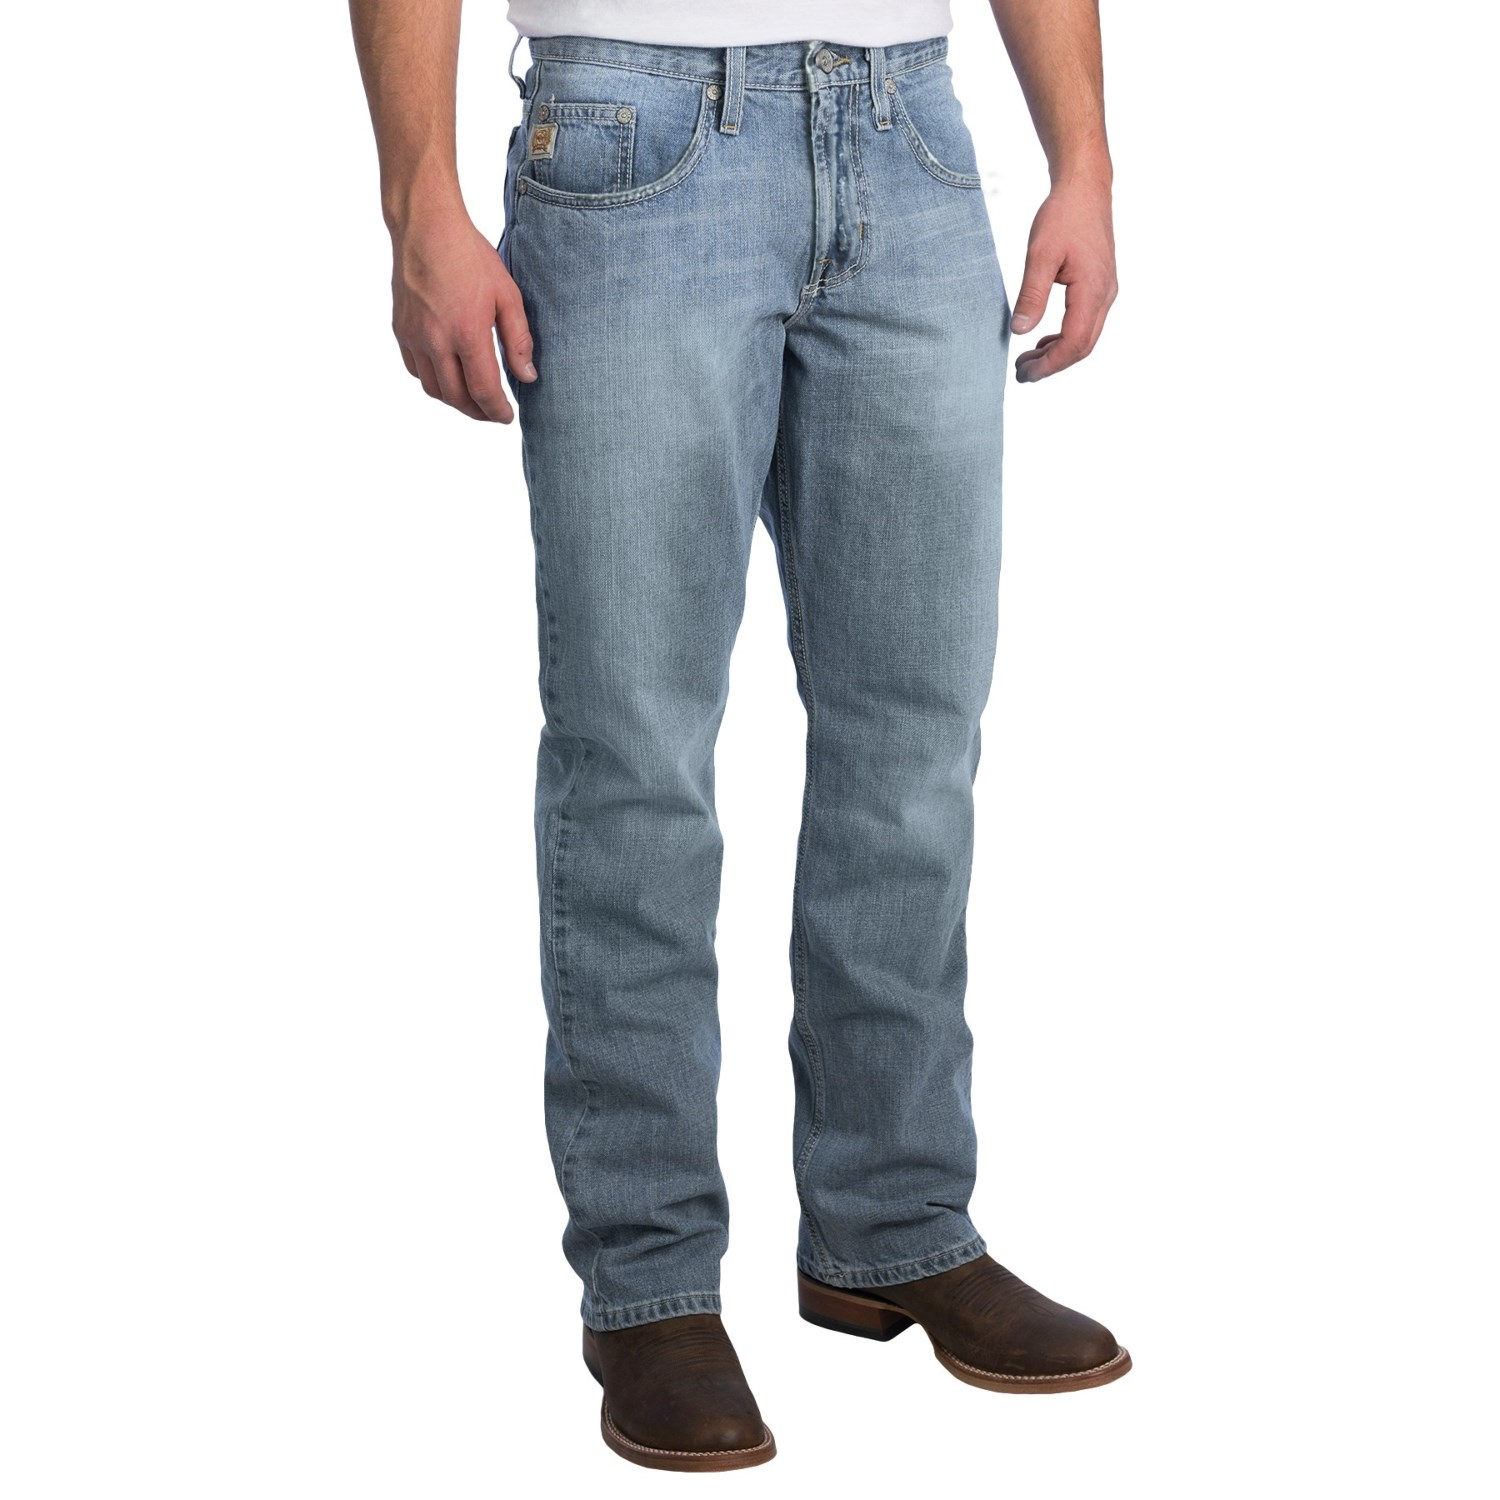 Cinch Dooley Bootcut Jeans Fitted For Men In Light